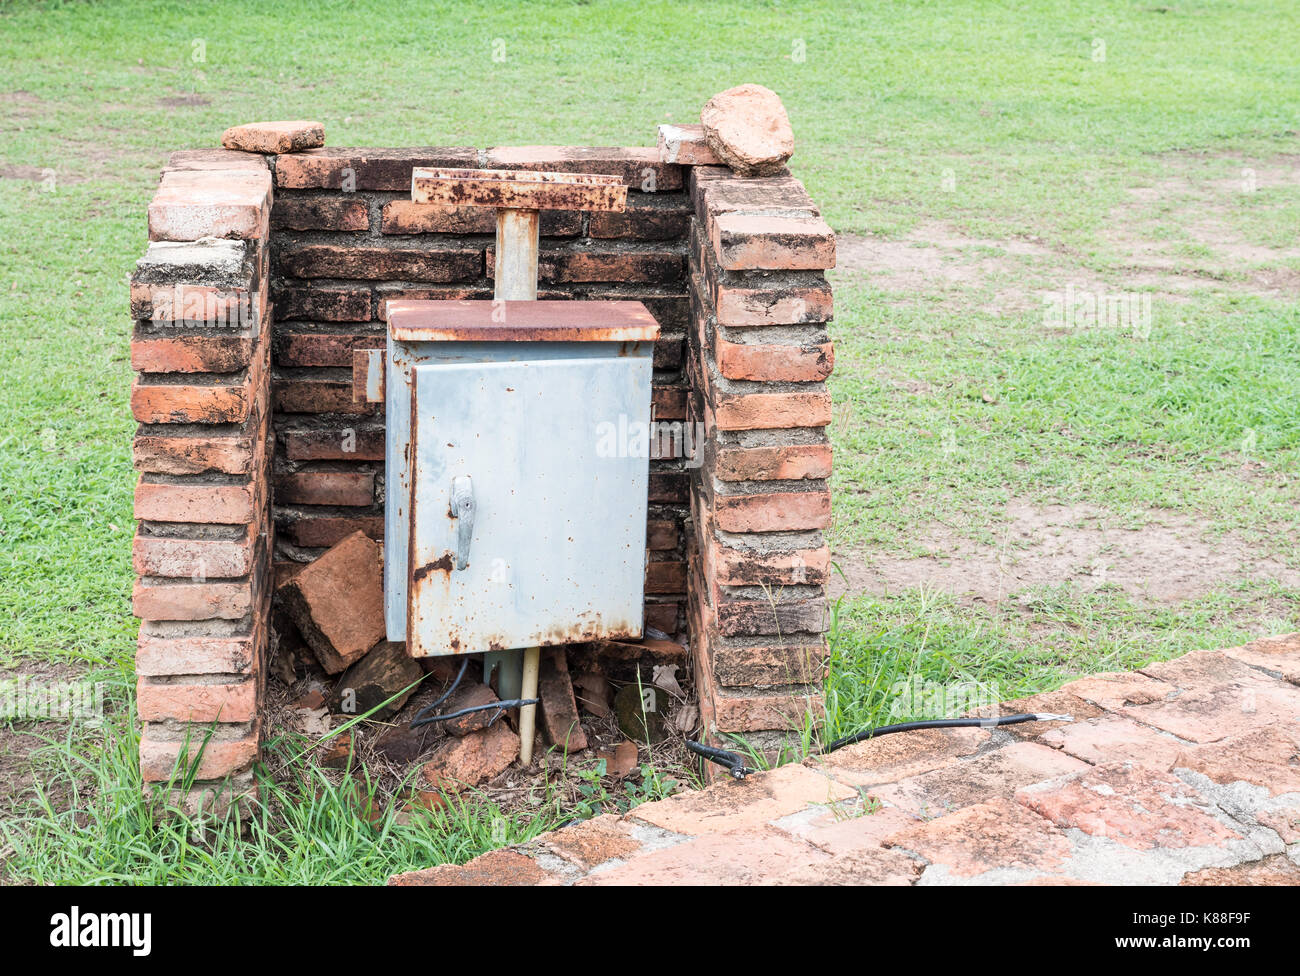 Rustry control box for electrical distribution in the historical park. Stock Photo